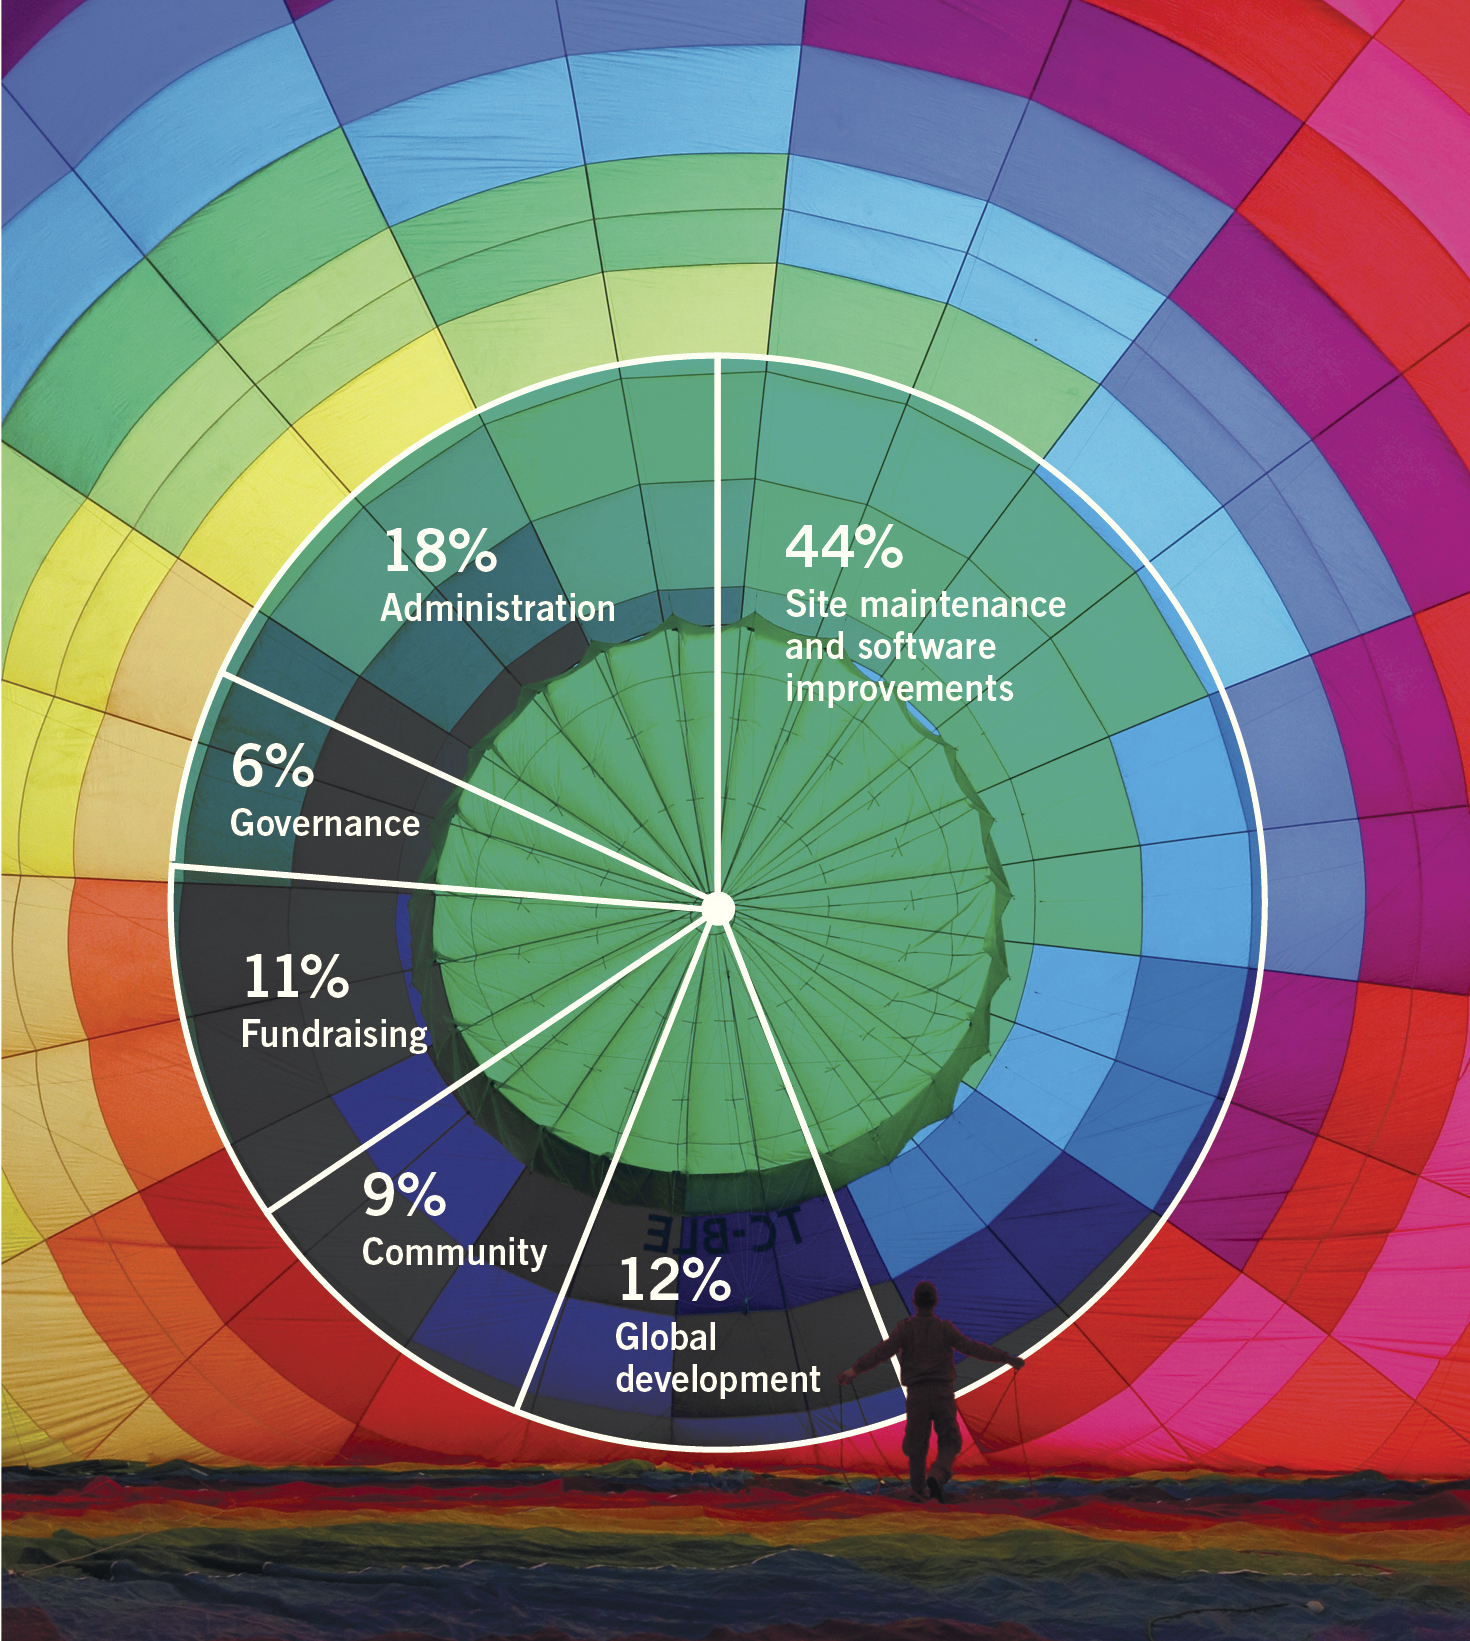 Charts In Powerpoint 2010: WMF annual report 2010-11 financials pie chart.jpg ,Chart